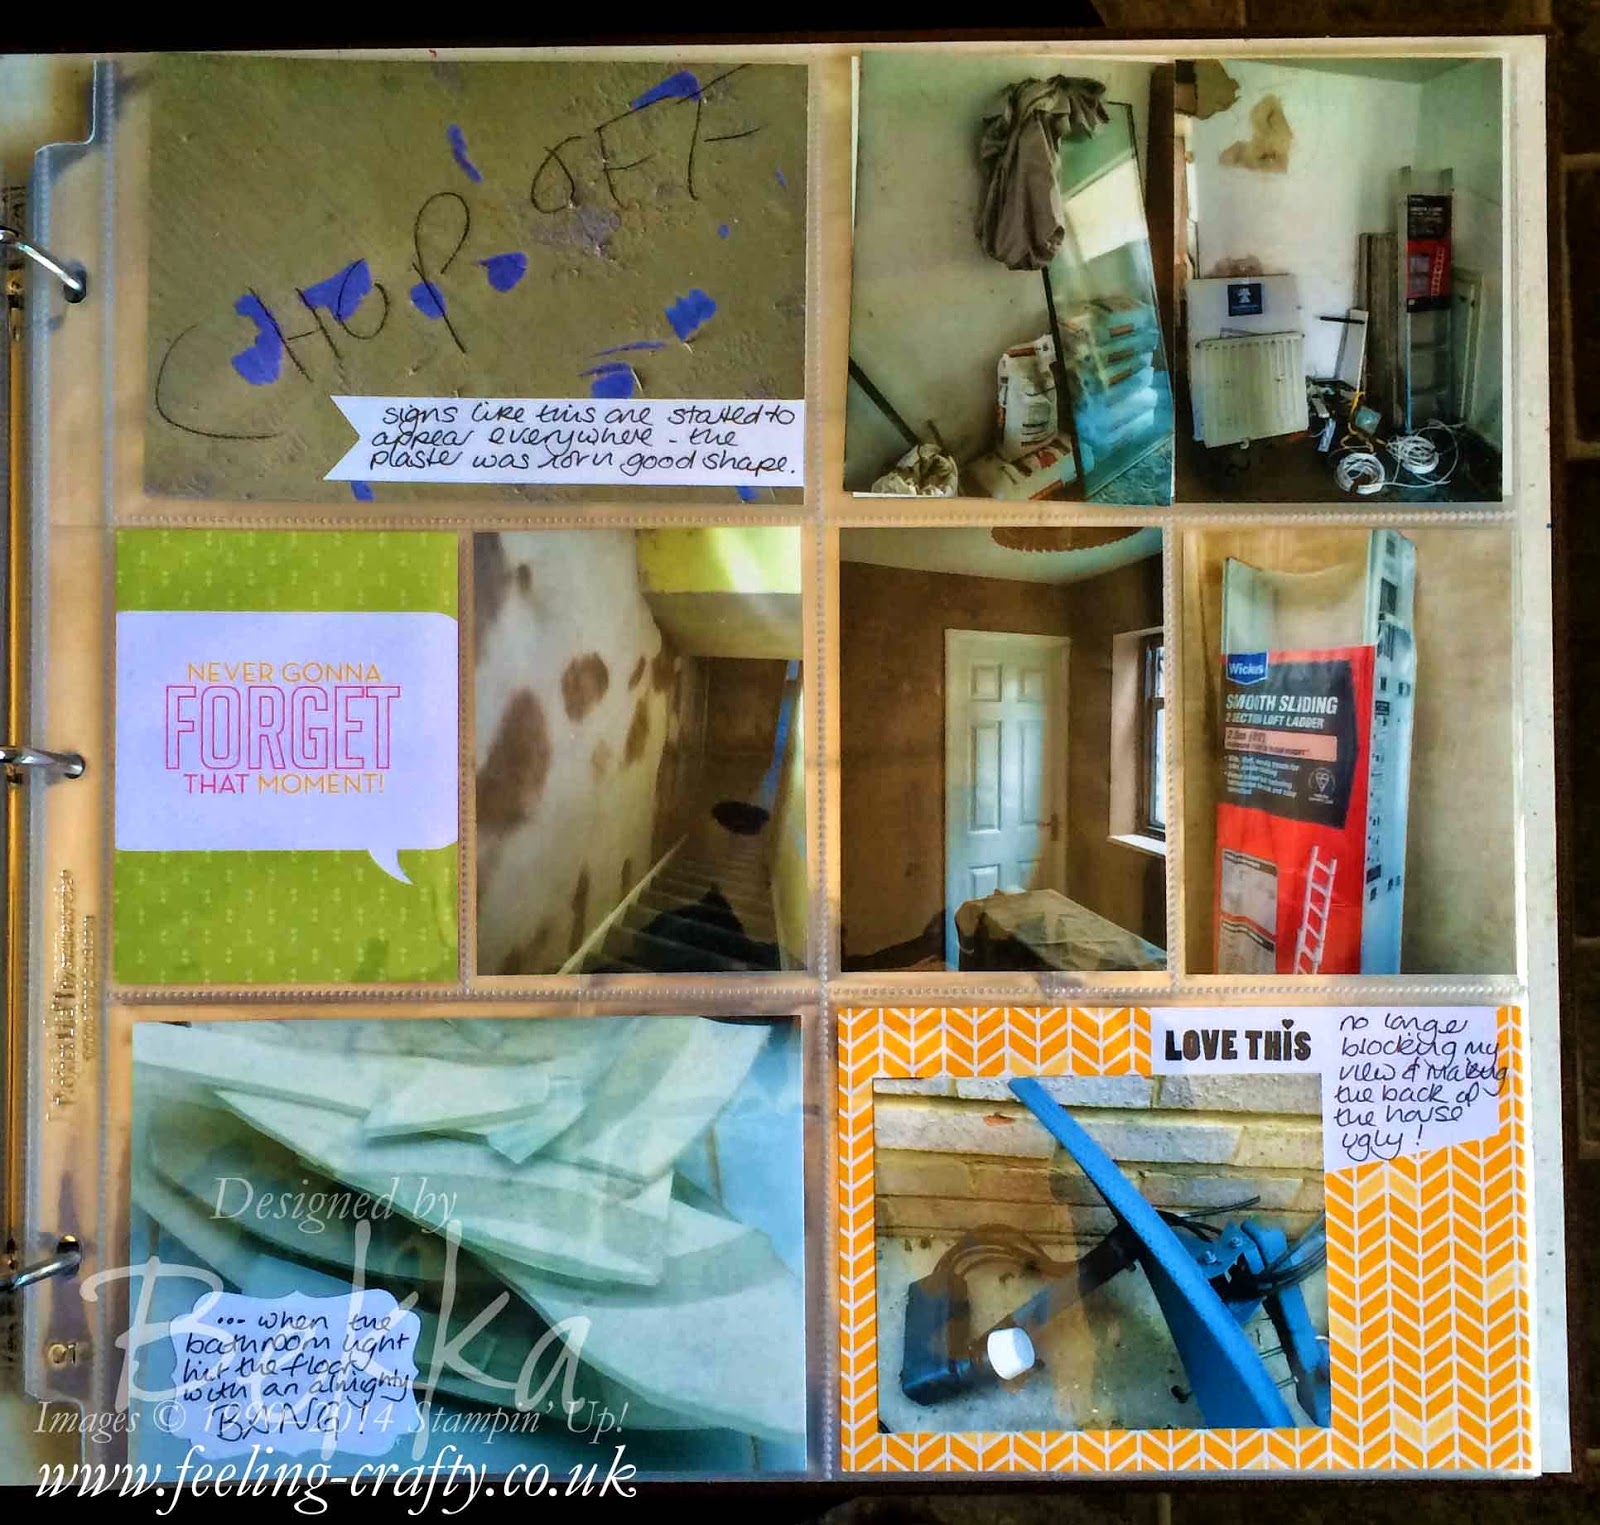 Project Life by Stampin' Up! Pages showing Bekka's House renovation project - check it out here